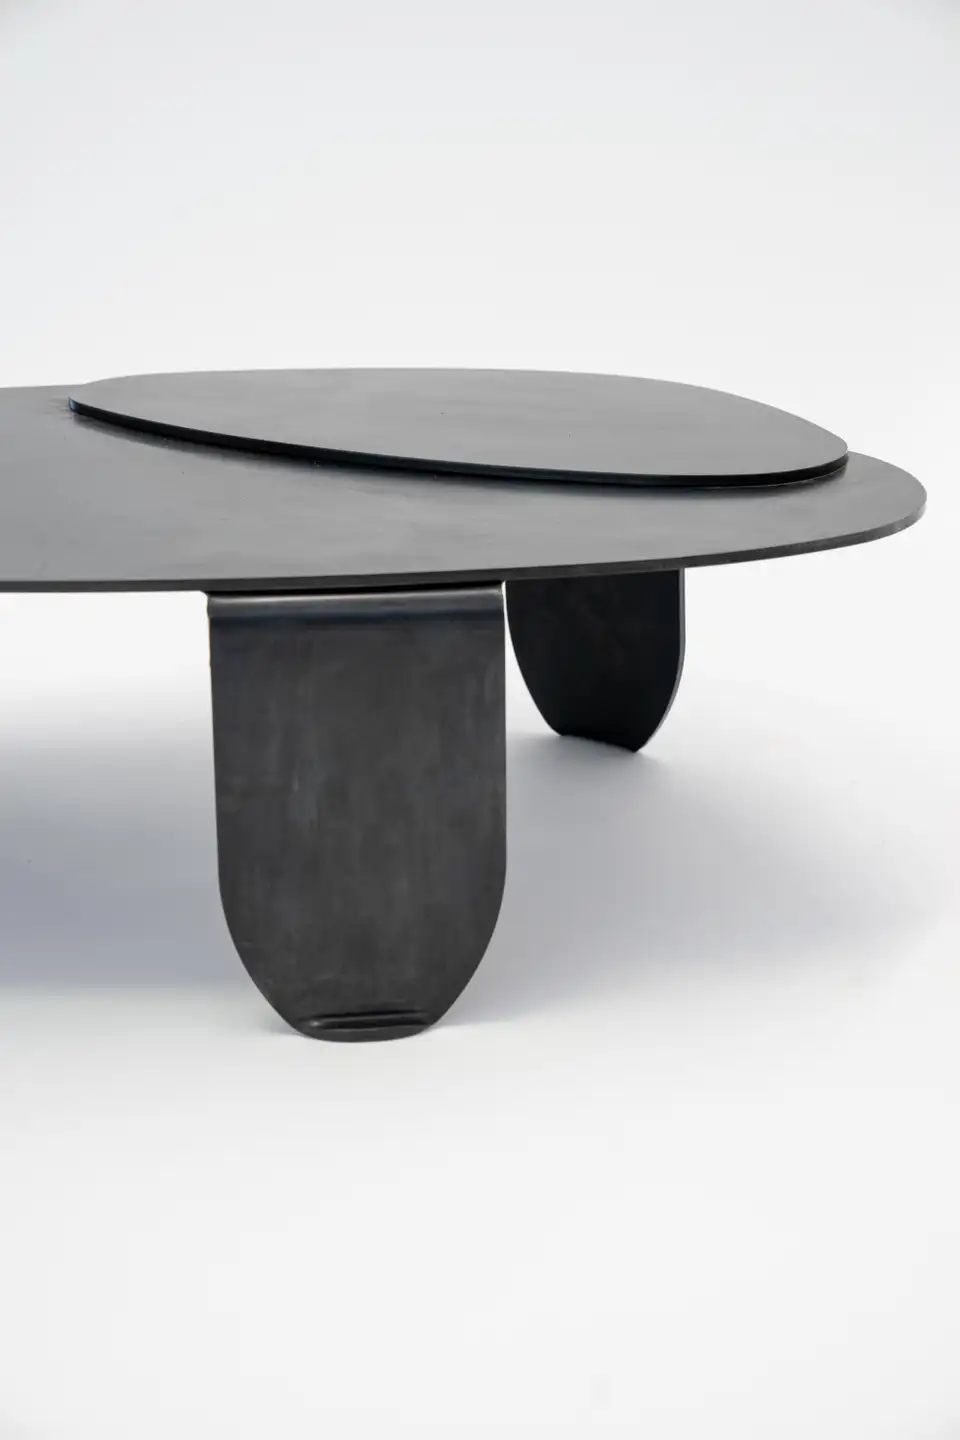 Black Modern Contemporary Blackened Steel Circular Organic Shape Coffee Table In 2020 Contemporary Coffee Table Modern Coffee Tables Contemporary Decorative Objects